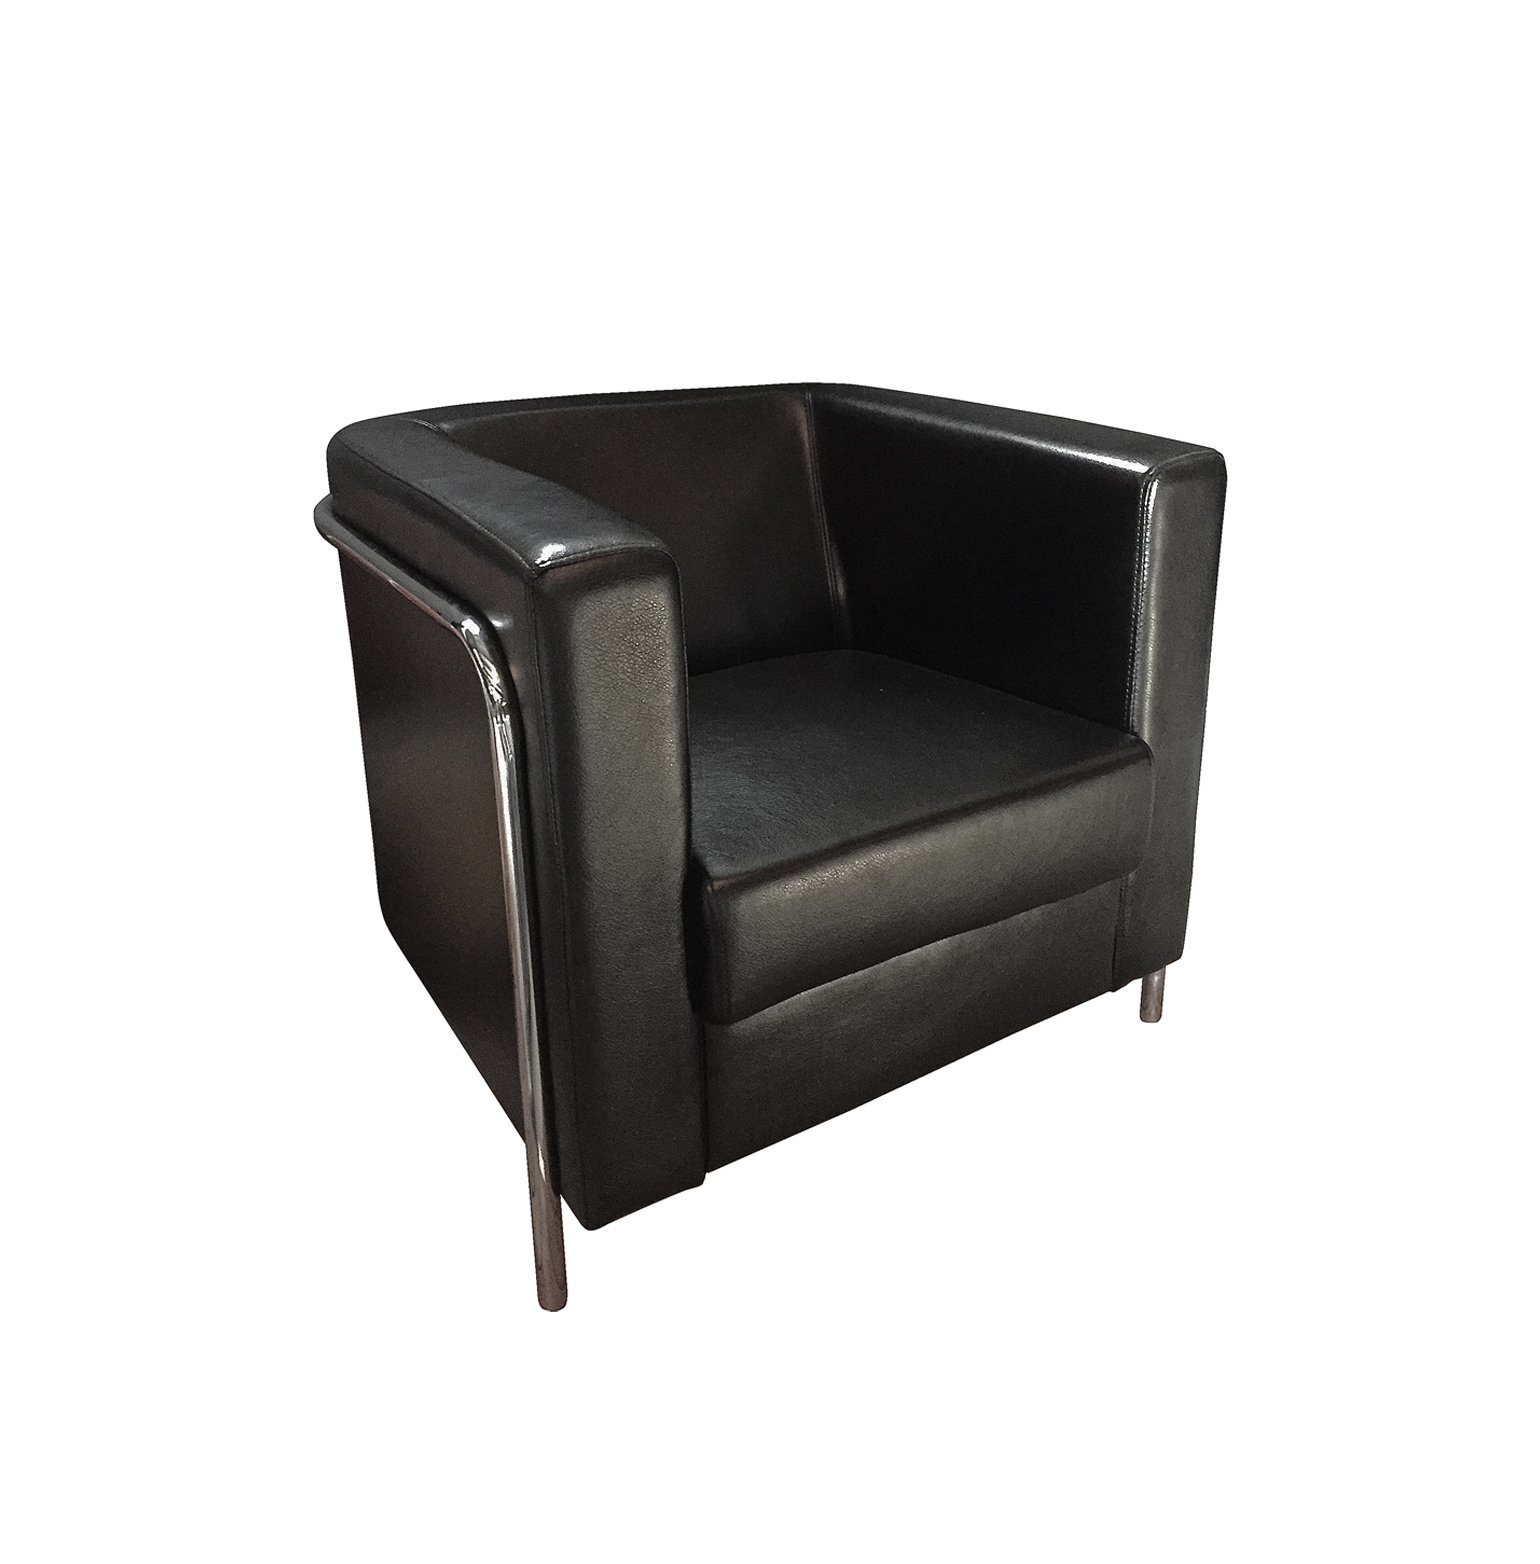 Corbusier Single Seater Sofa - Black